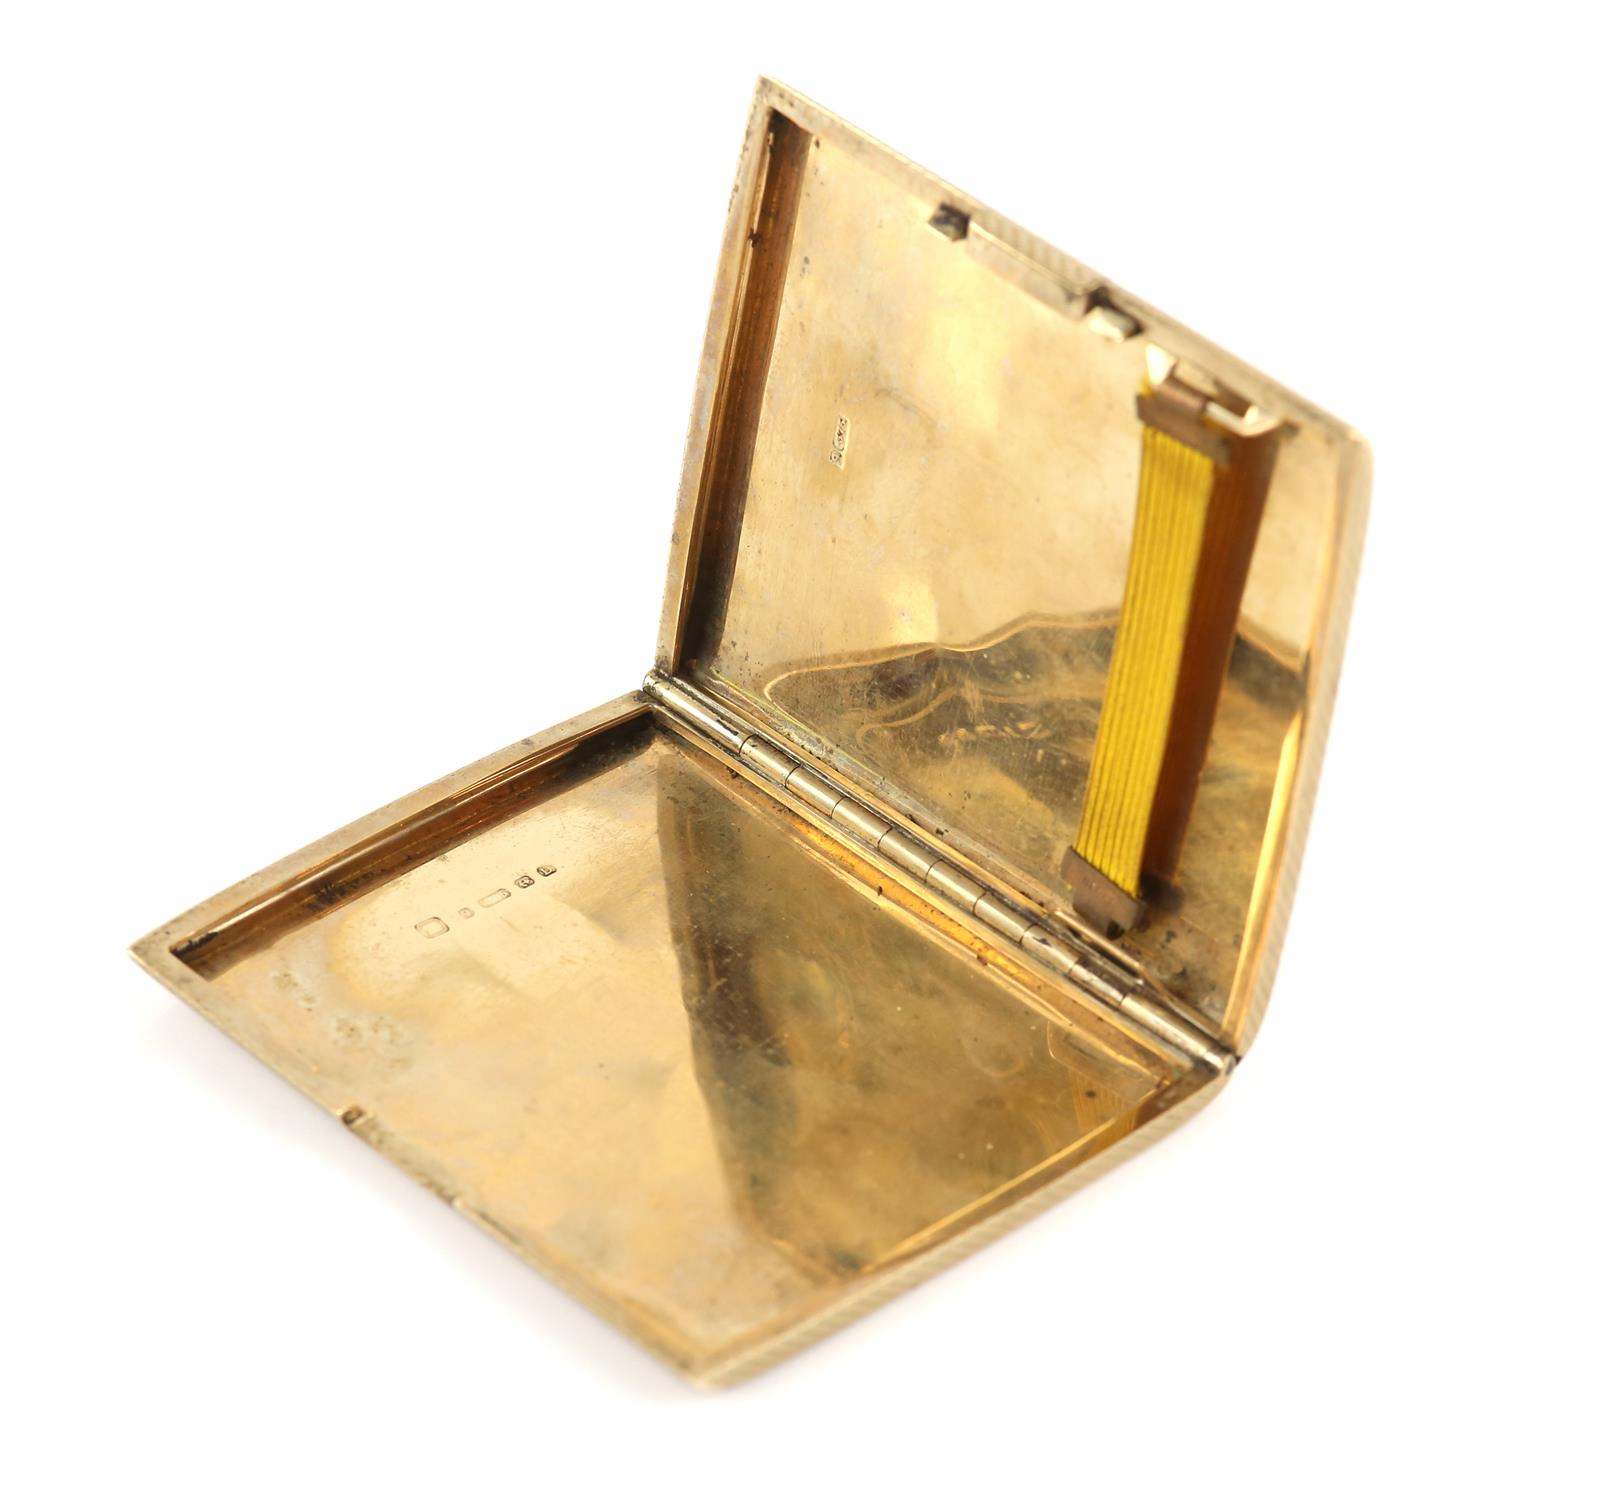 1920's gold cigarette case, engine turned detail, concealed button, in 9 ct yellow gold hallmarked - Image 2 of 3